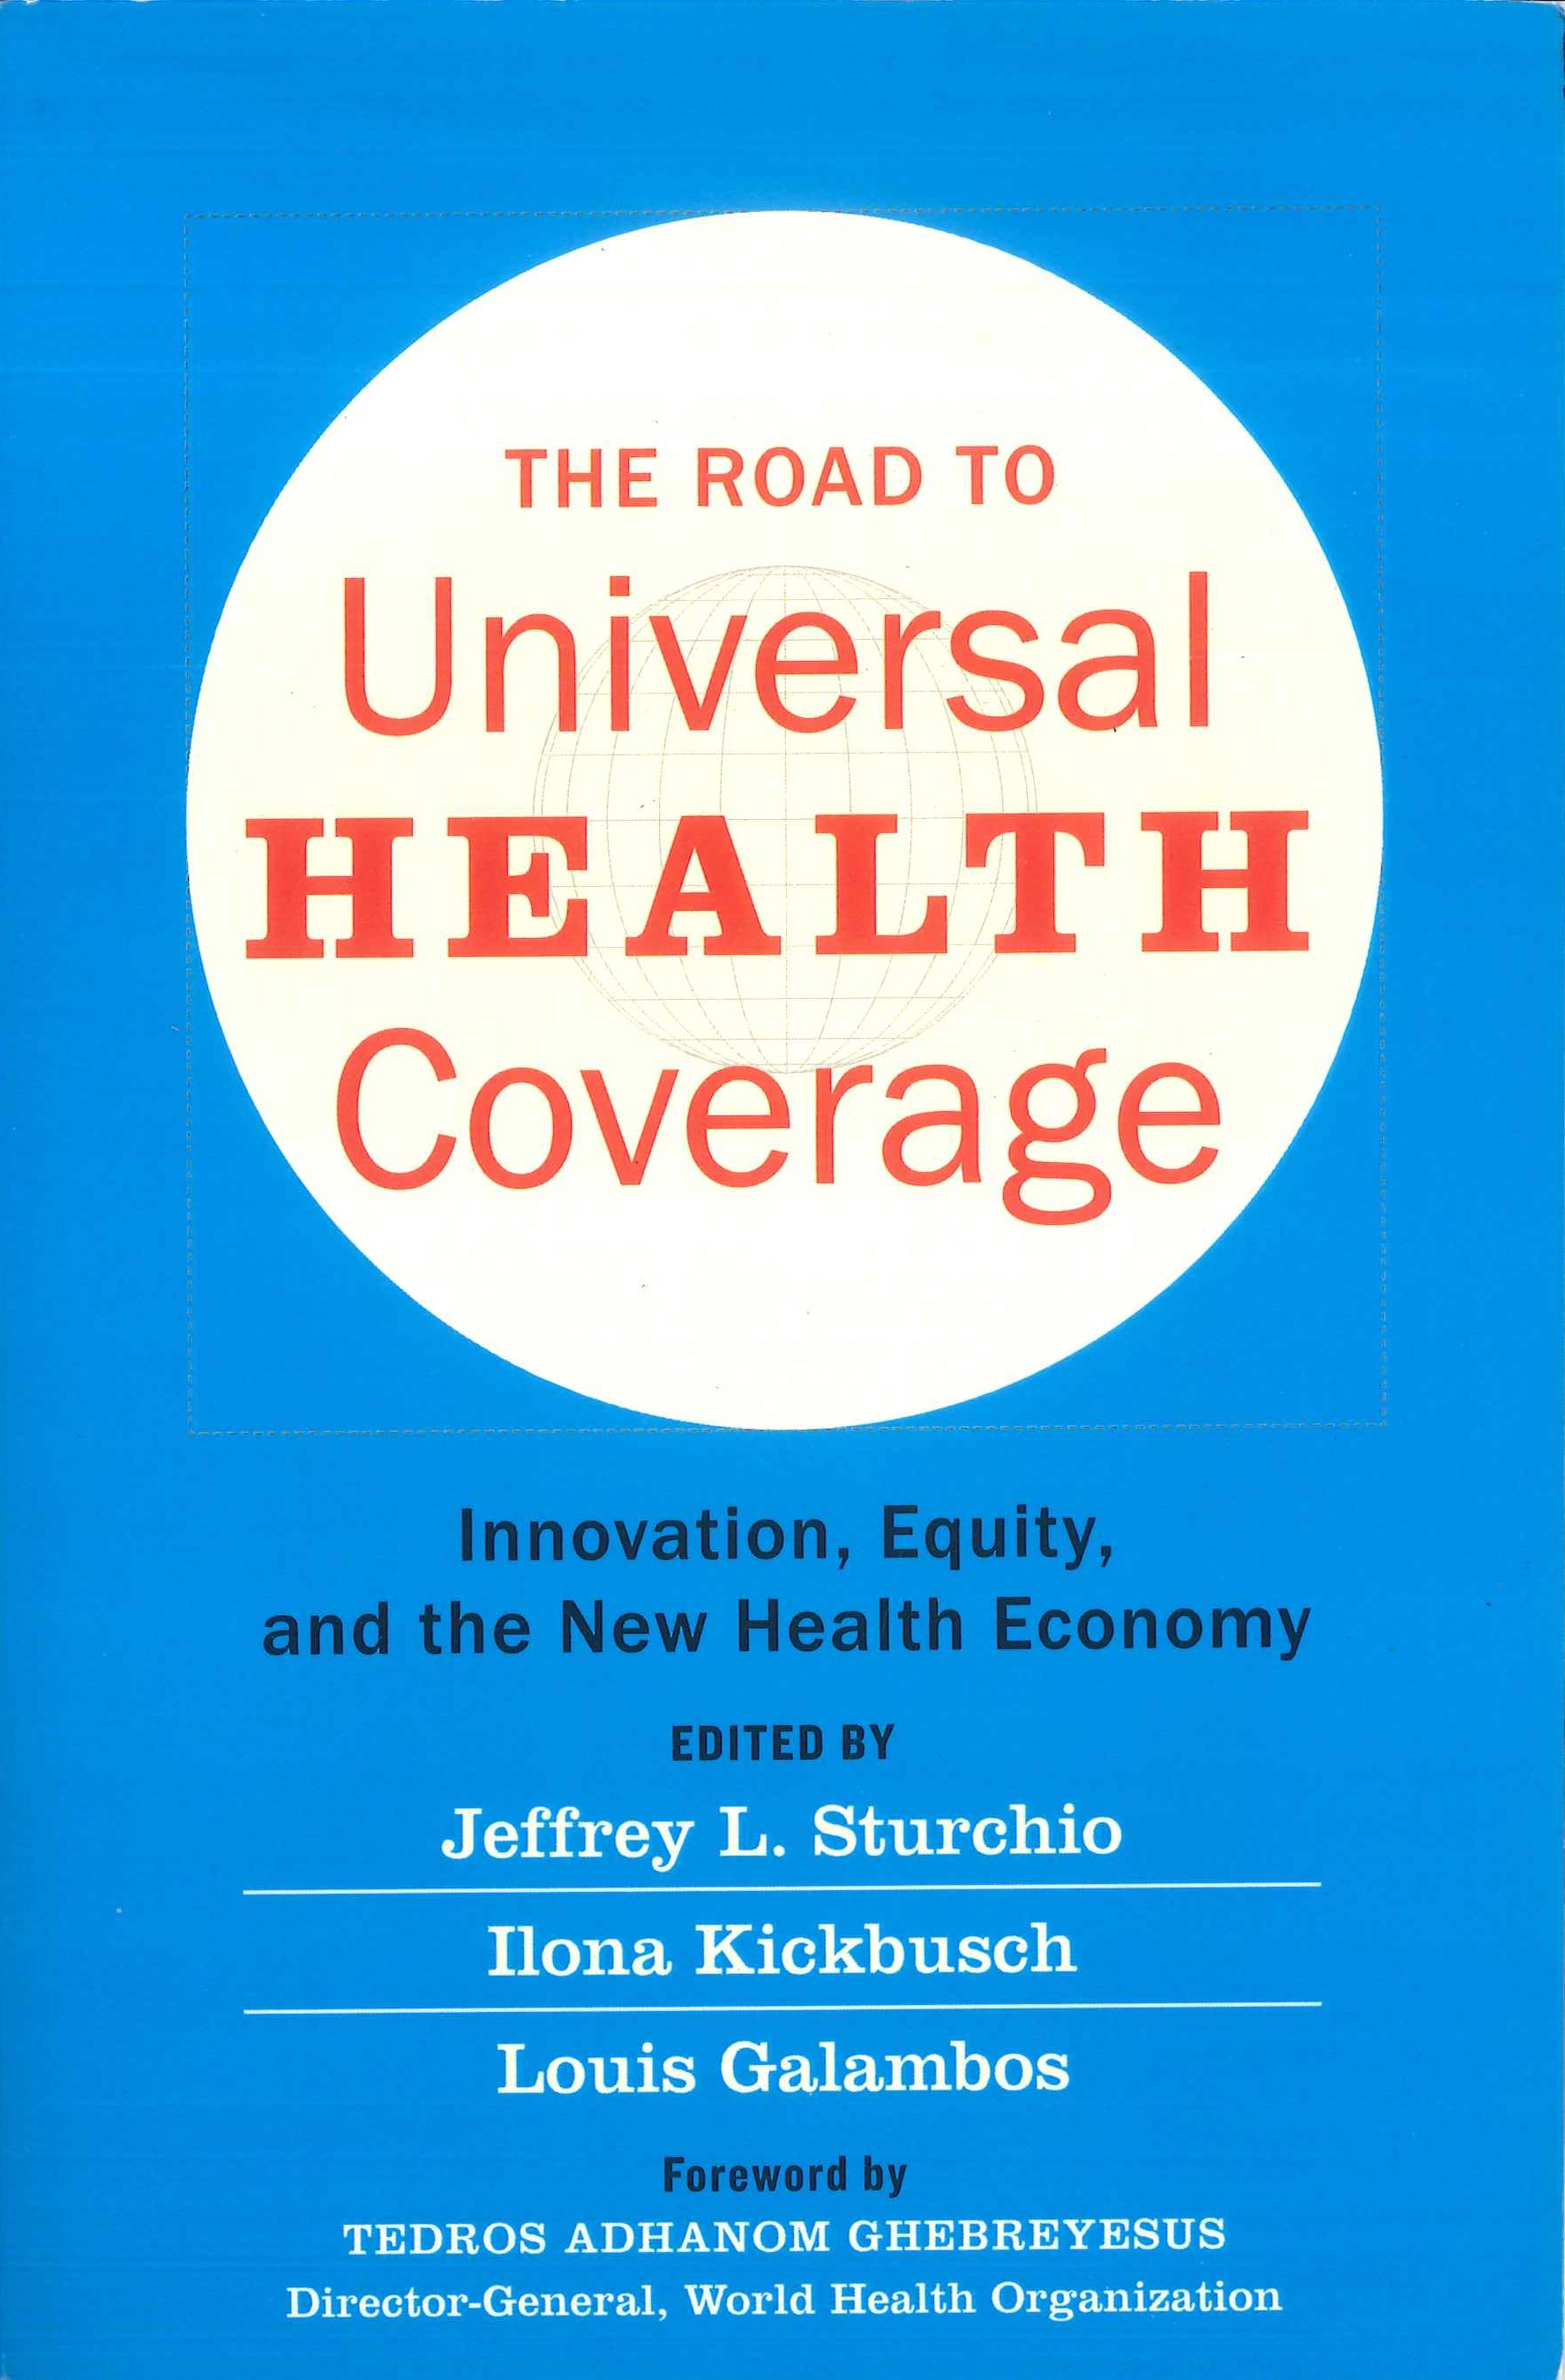 The road to universal health coverage:innovation, equity, and the new health economy